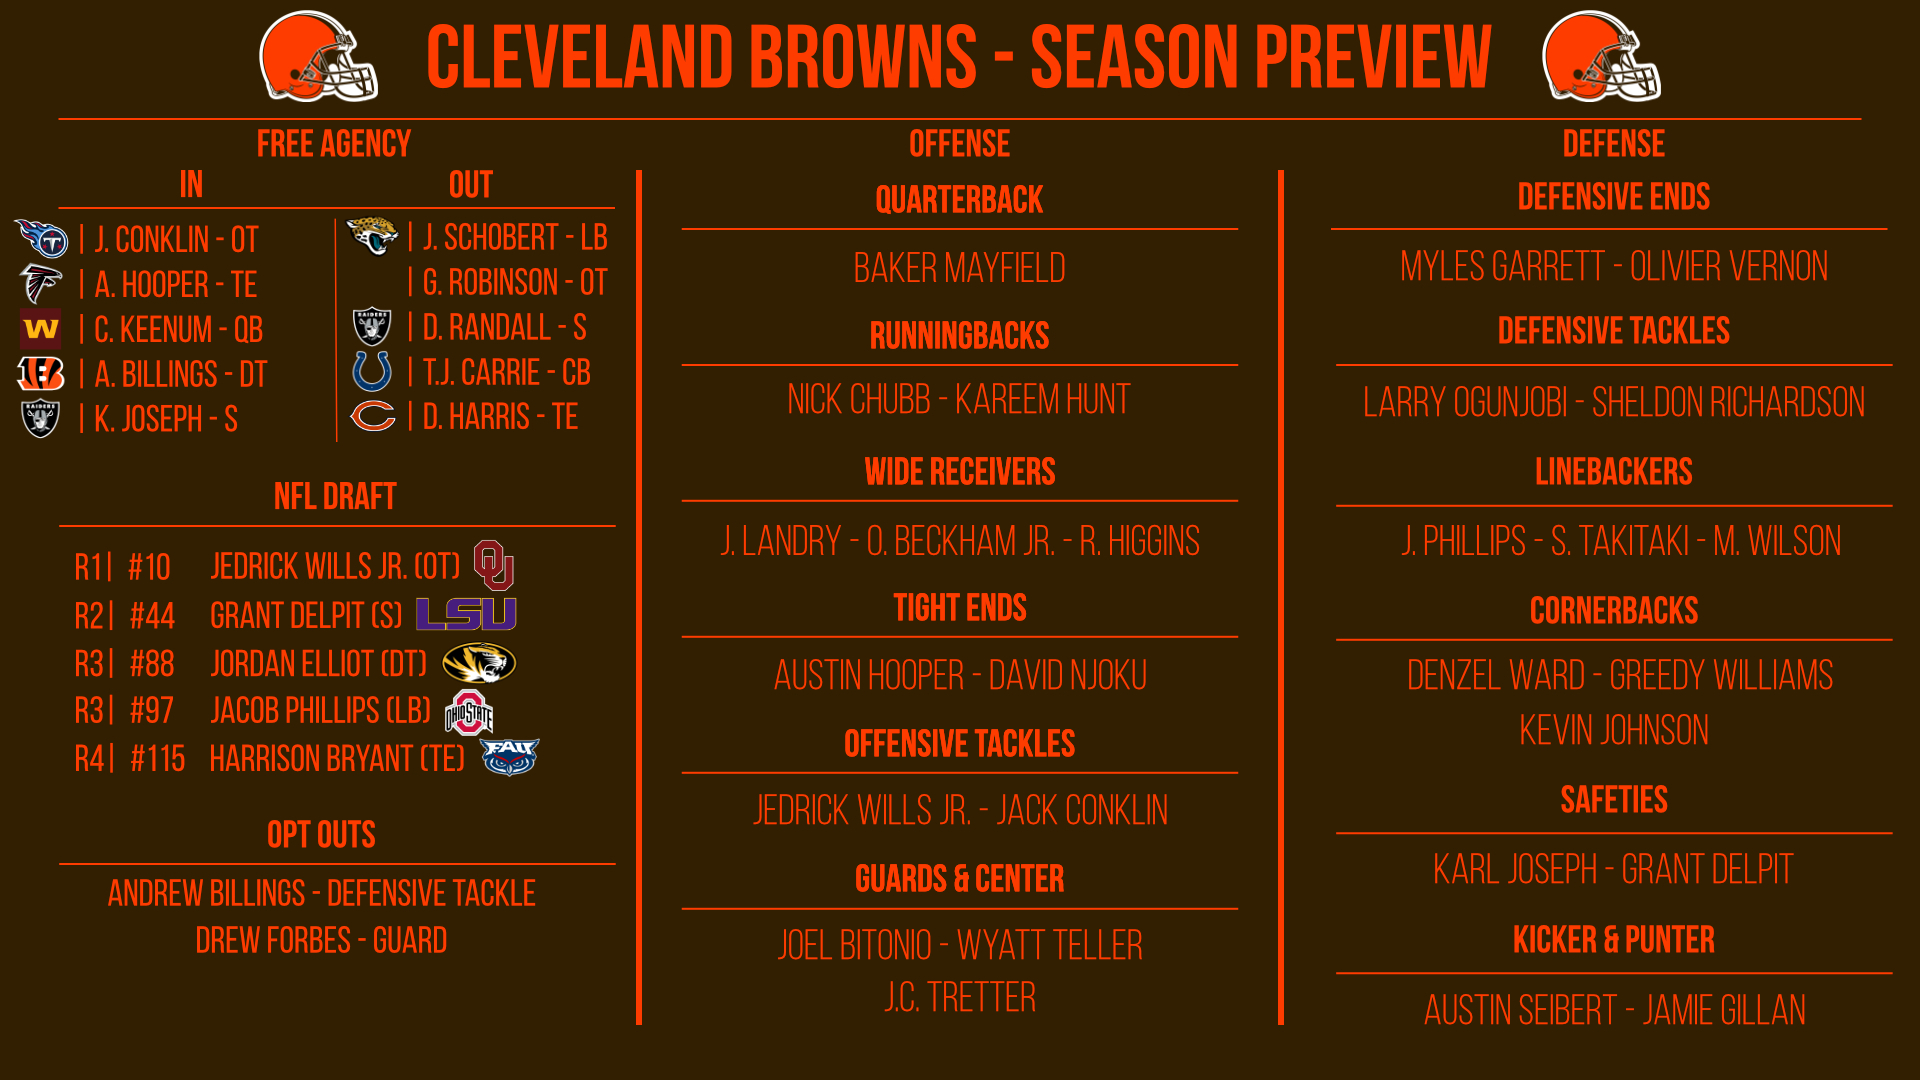 Cleveland Browns preview